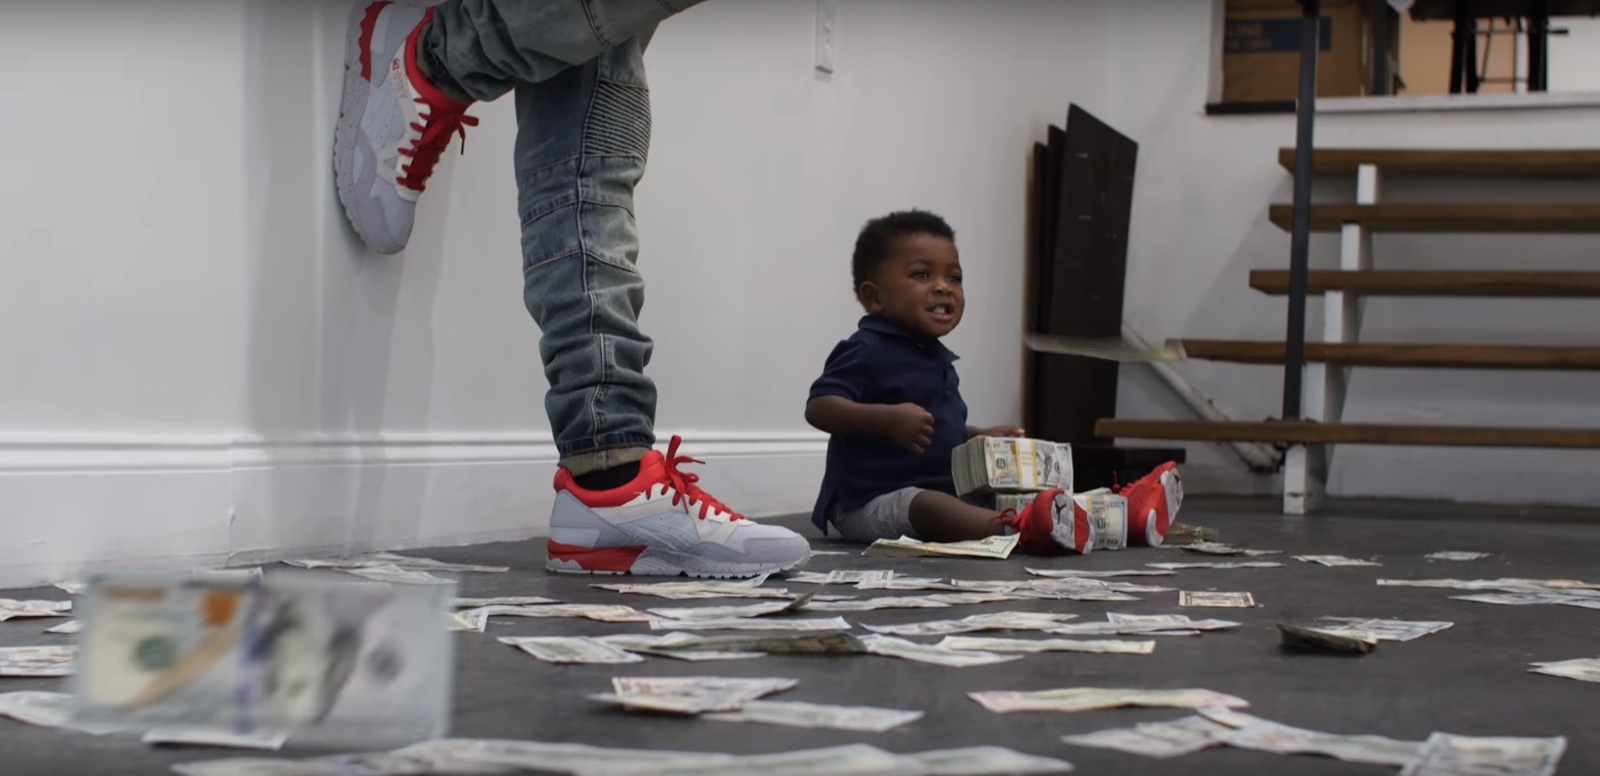 Nike Air Jordan Sneakers – YoungBoy Never Broke Again – Graffiti (2017) Official Music Video Product Placement